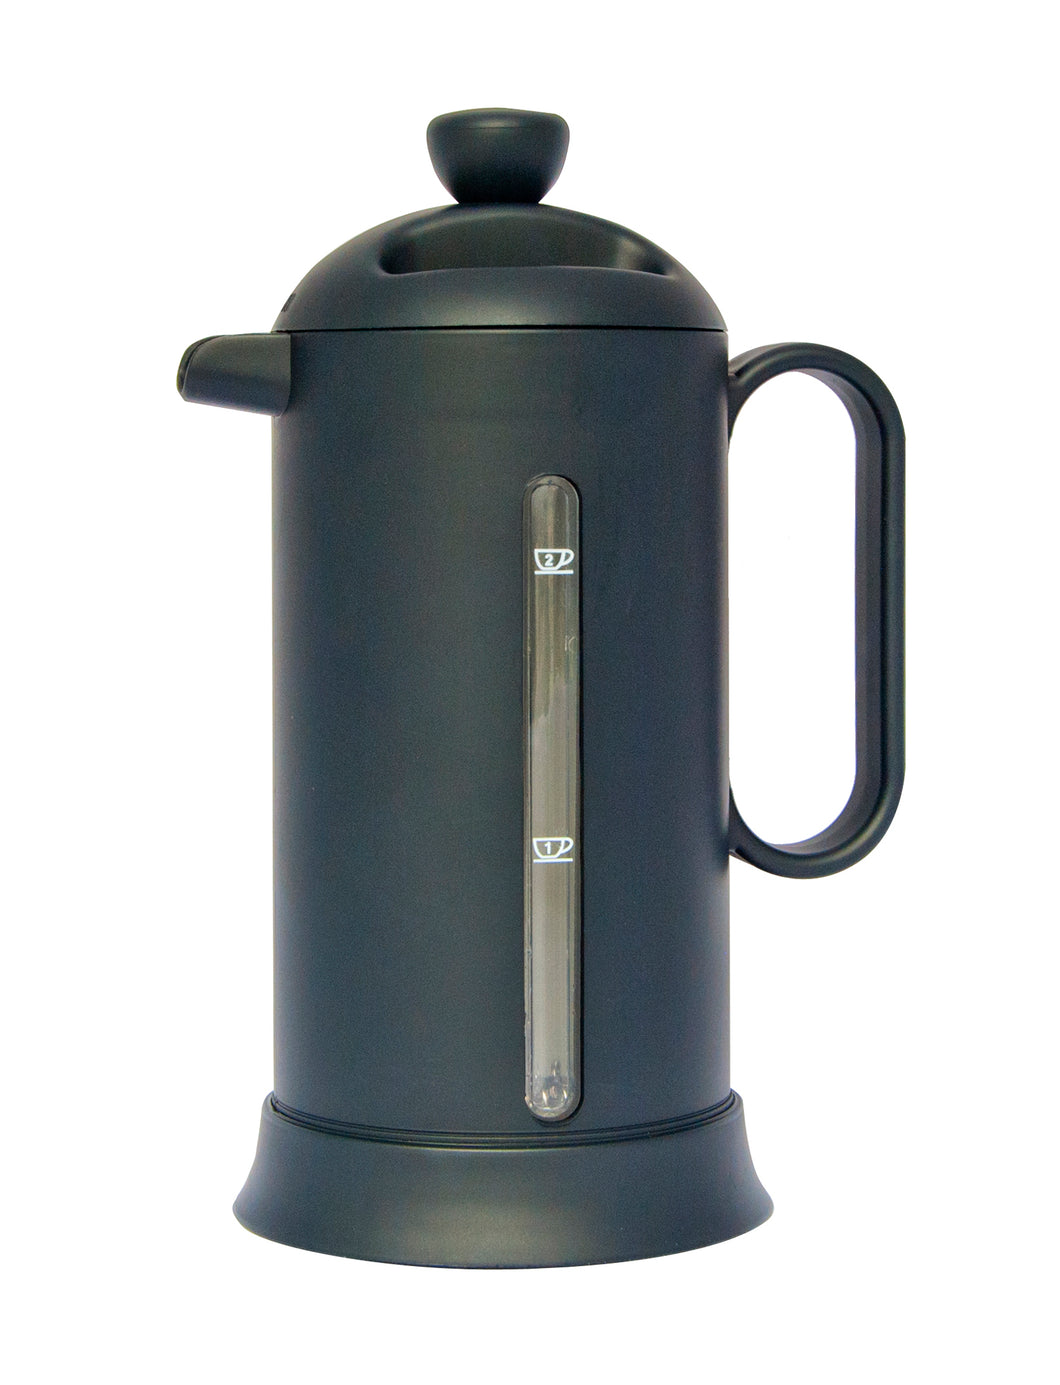 Excellent Houseware 350ml Thermal Coffee Plunger